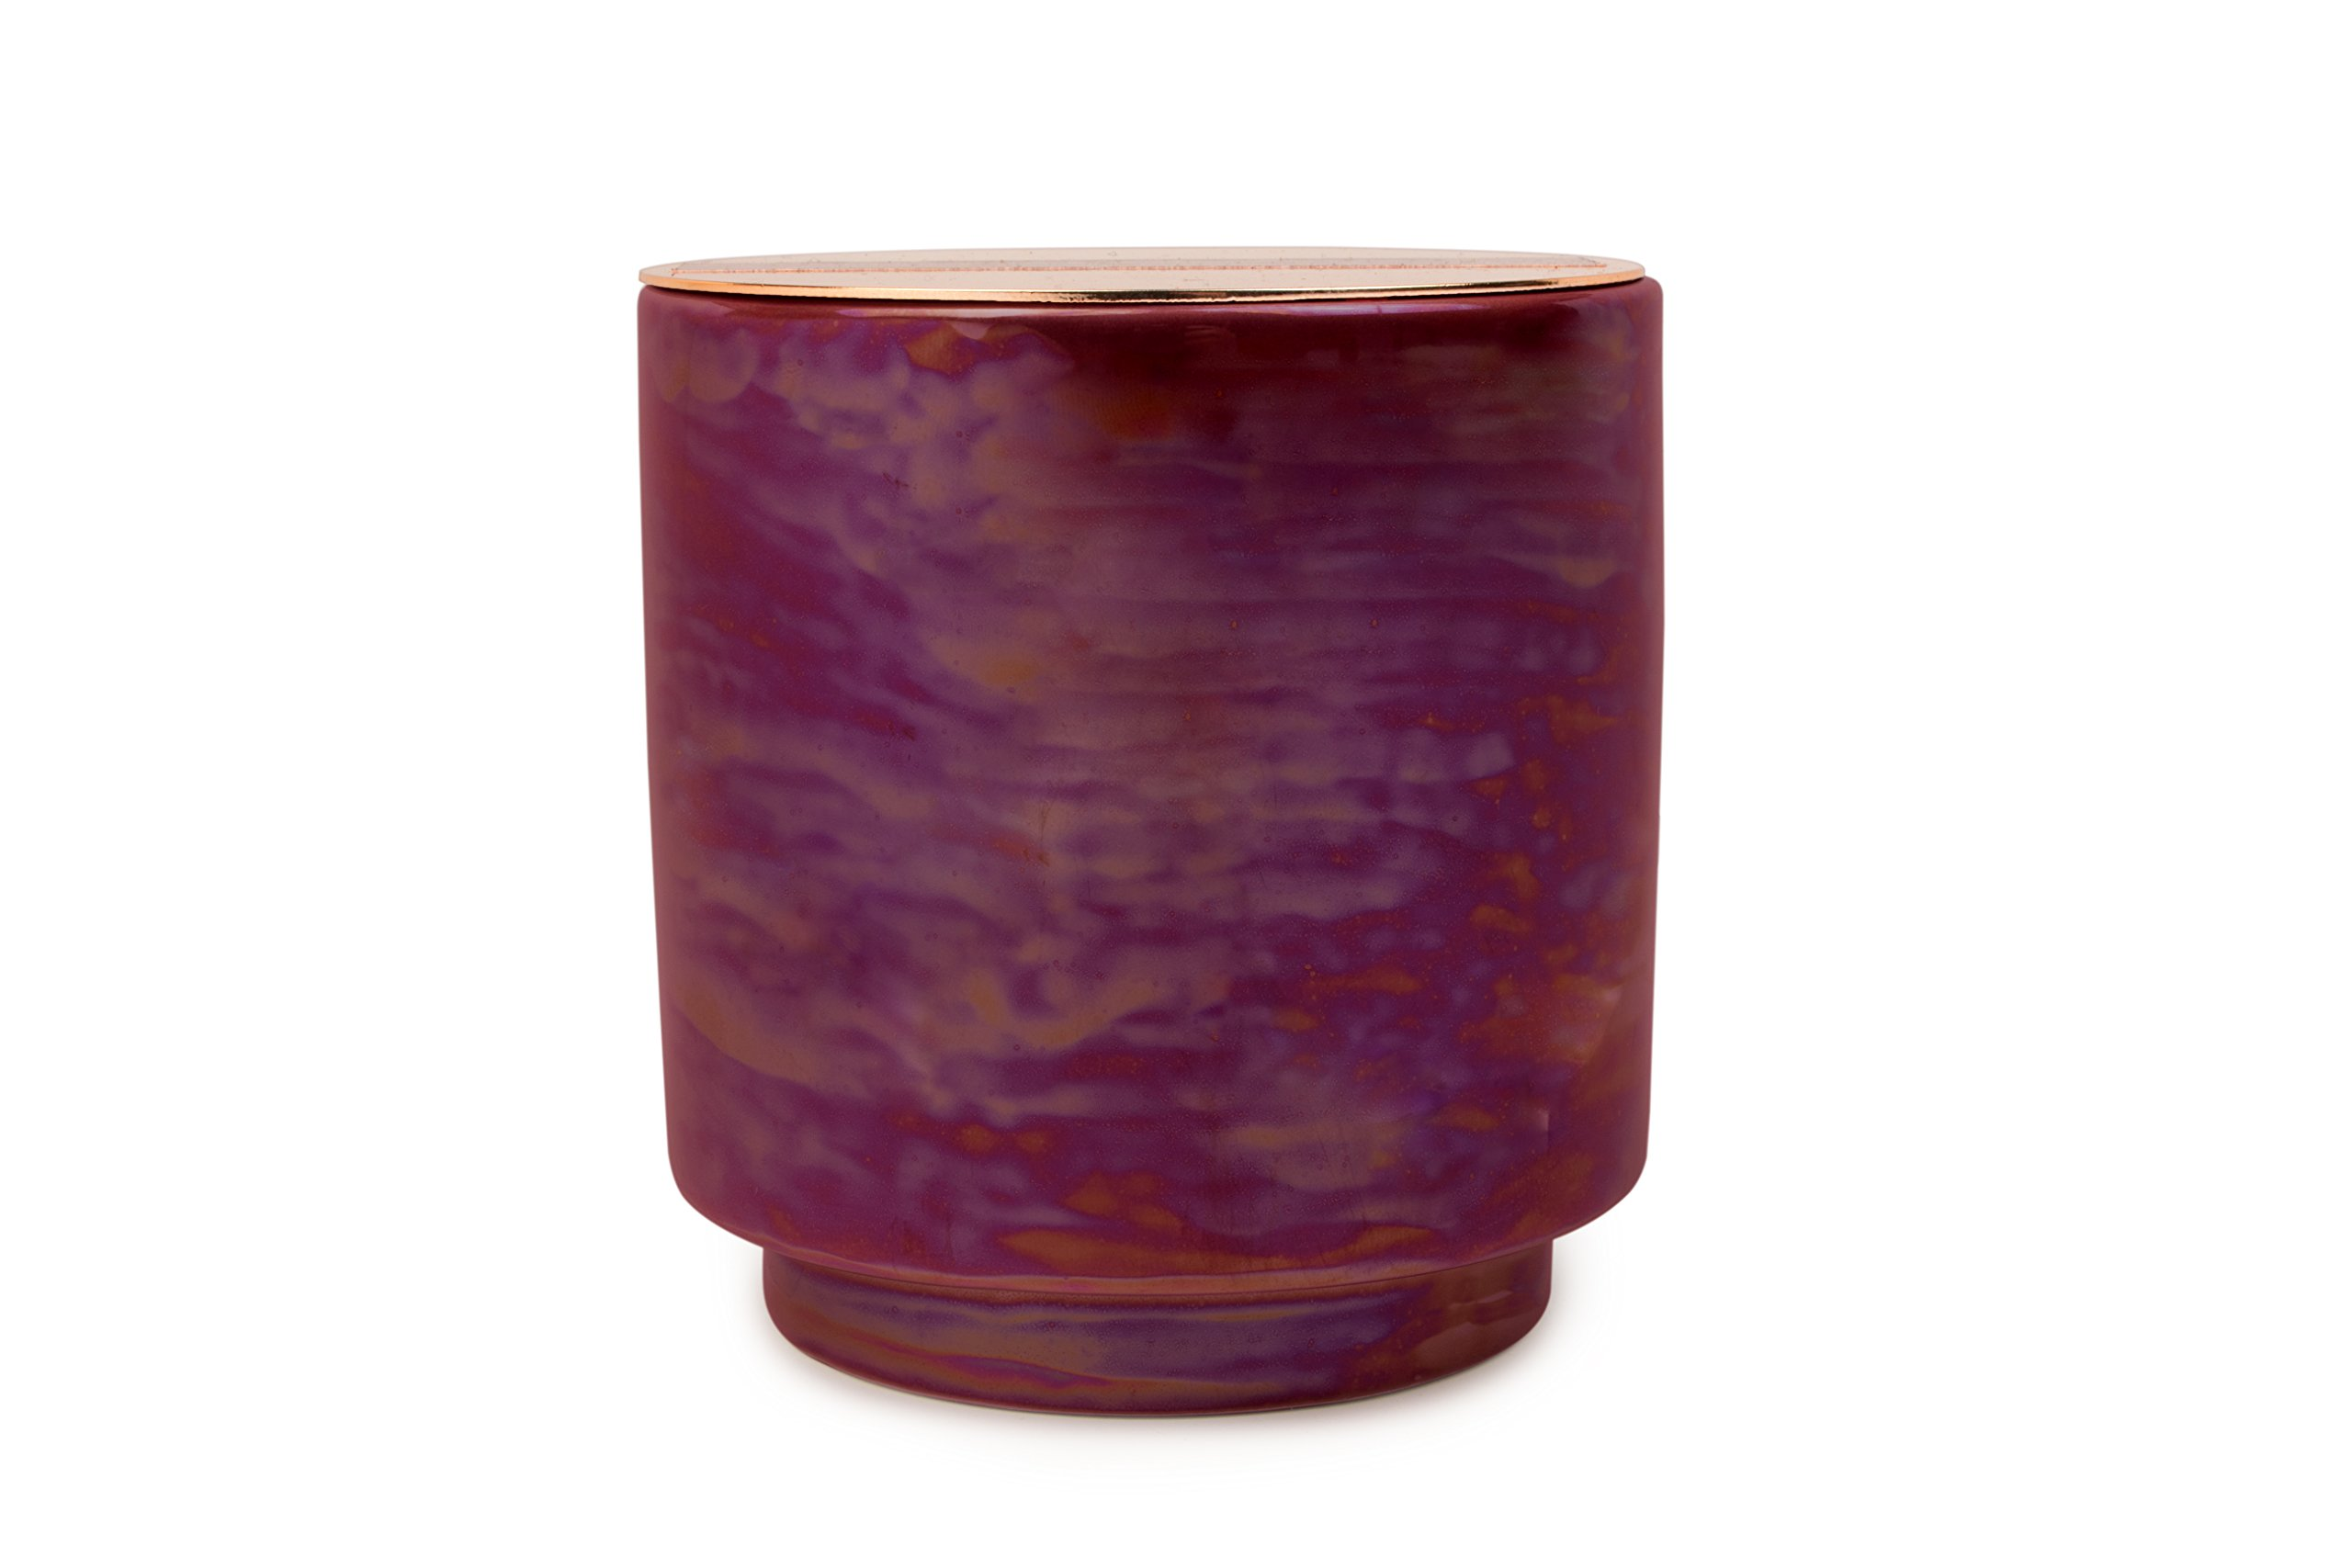 Paddywax Candles Glow Collection Scented Soy Wax Blend Candle in Iridescent Ceramic Pot, Medium- 17 Ounce, Cranberry & Rosé by Paddywax Candles (Image #1)